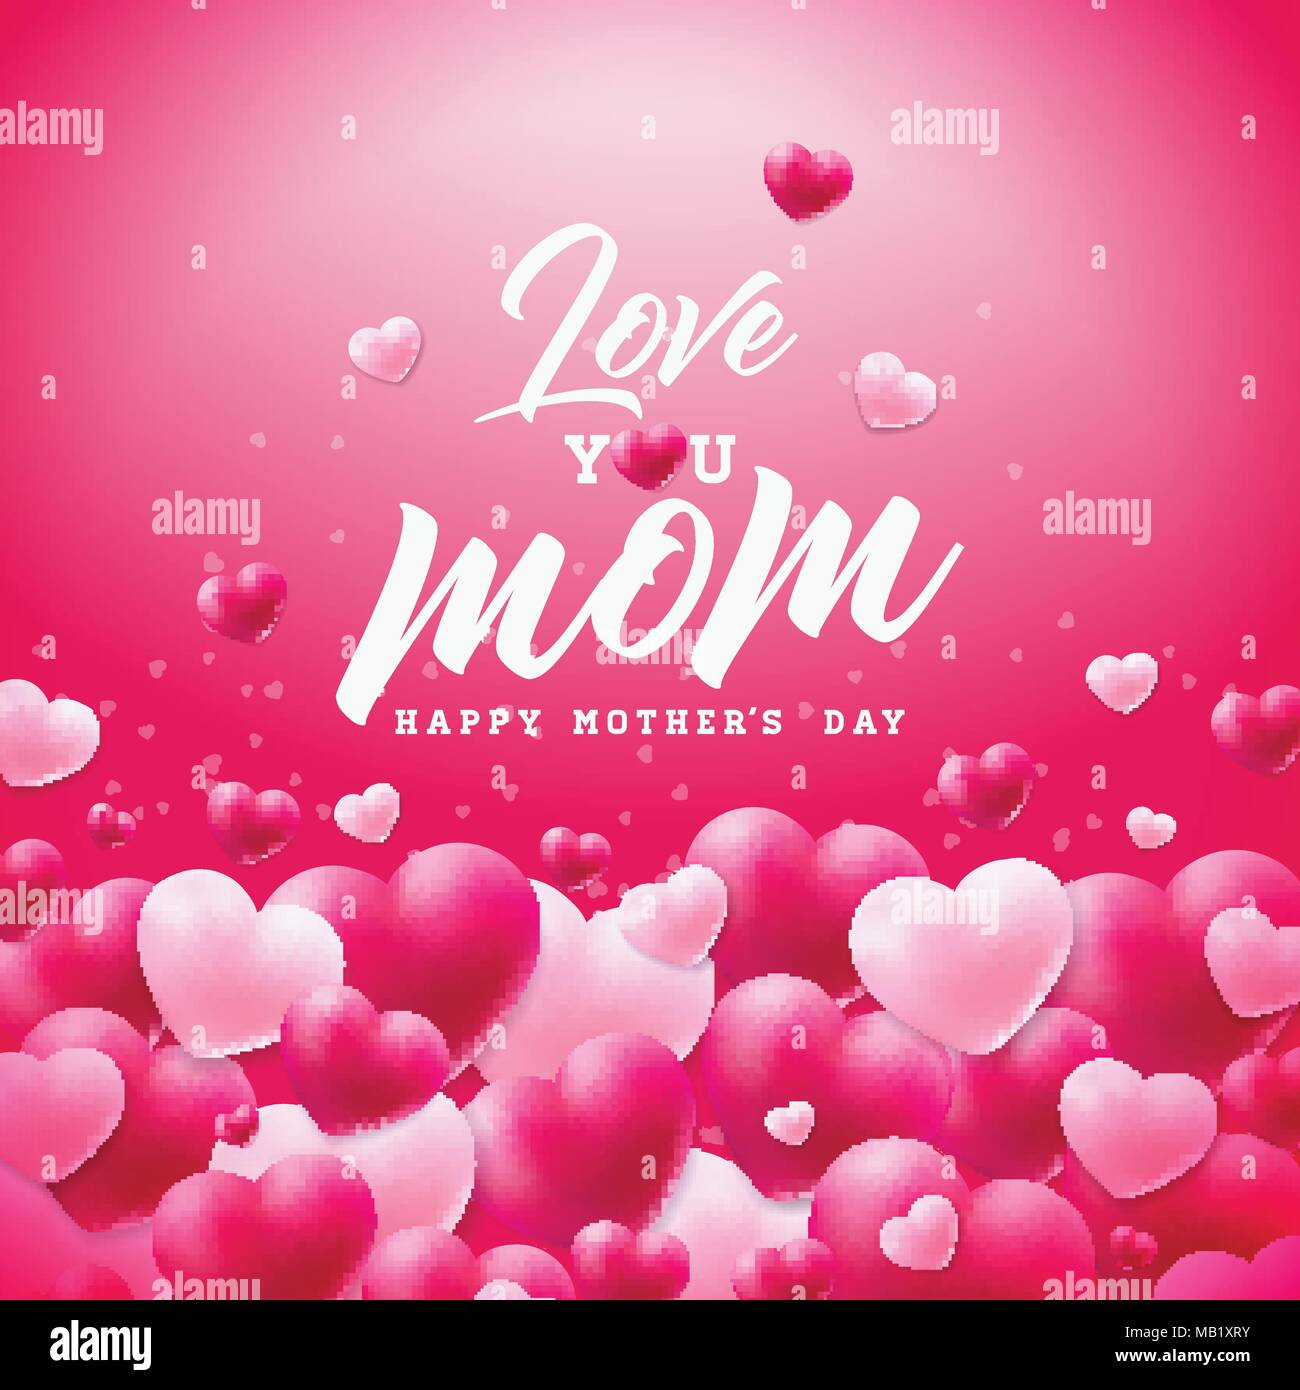 Happy Mothers Day Greeting Card Design With Heart And Love You Mom